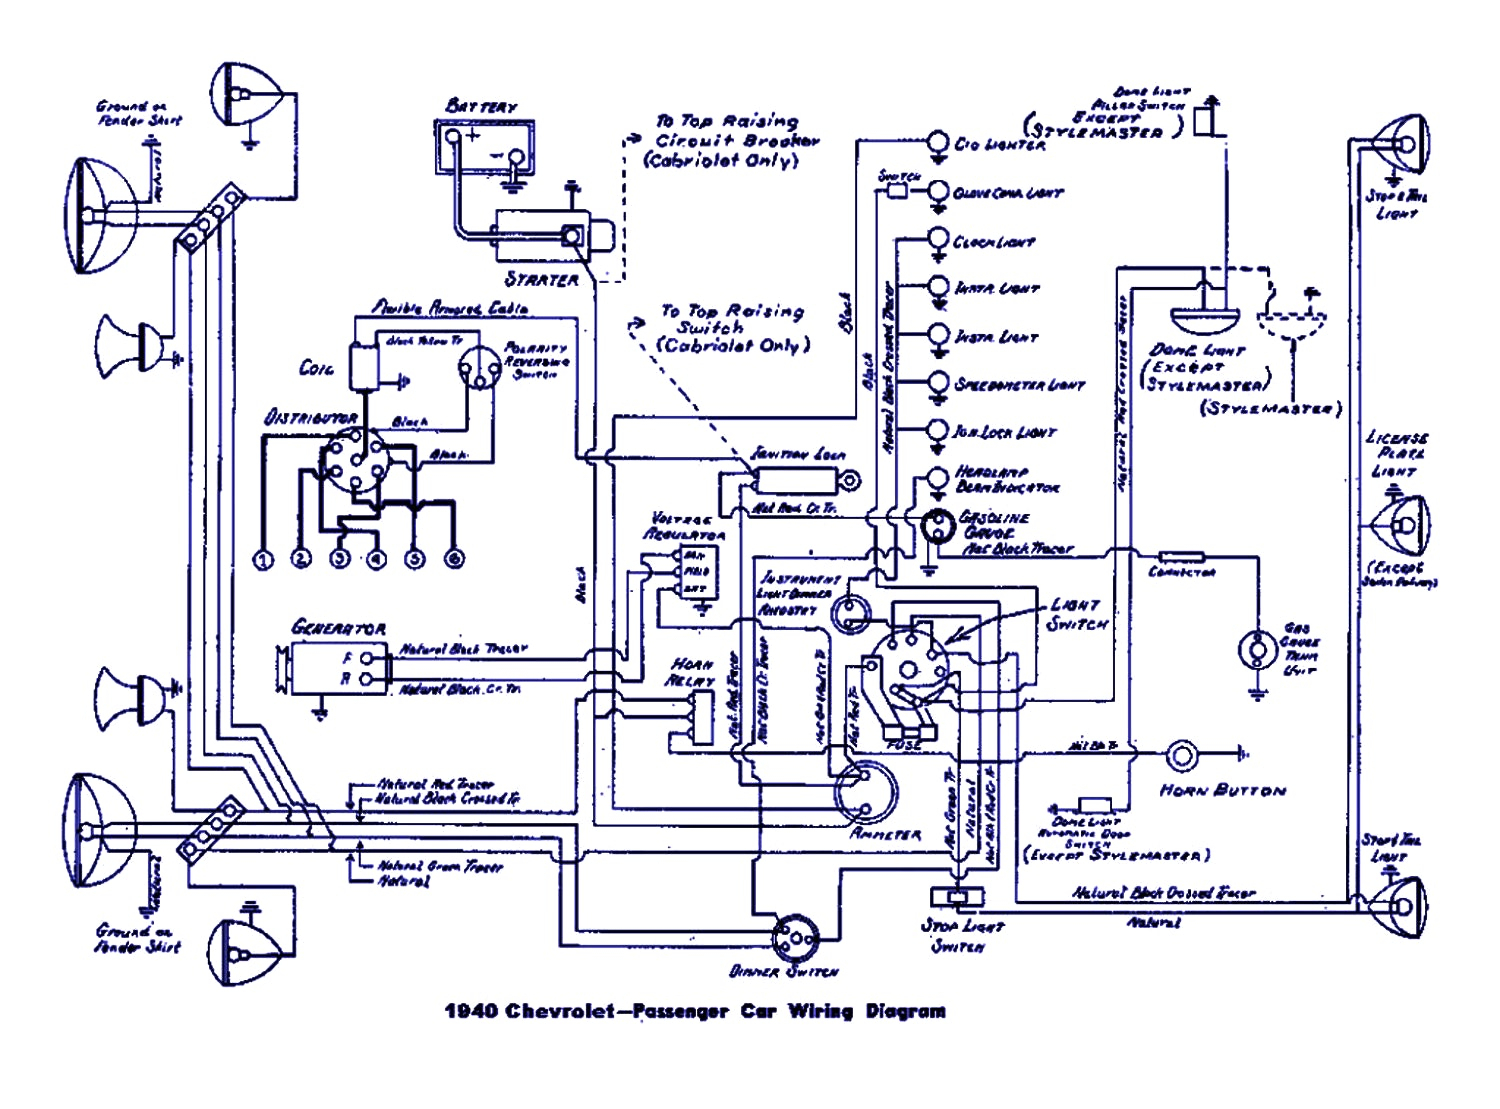 small resolution of typical golf cart wiring diagram wiring schematic symbols chart here39s a typical schematic of how such an eesb5v setup might look